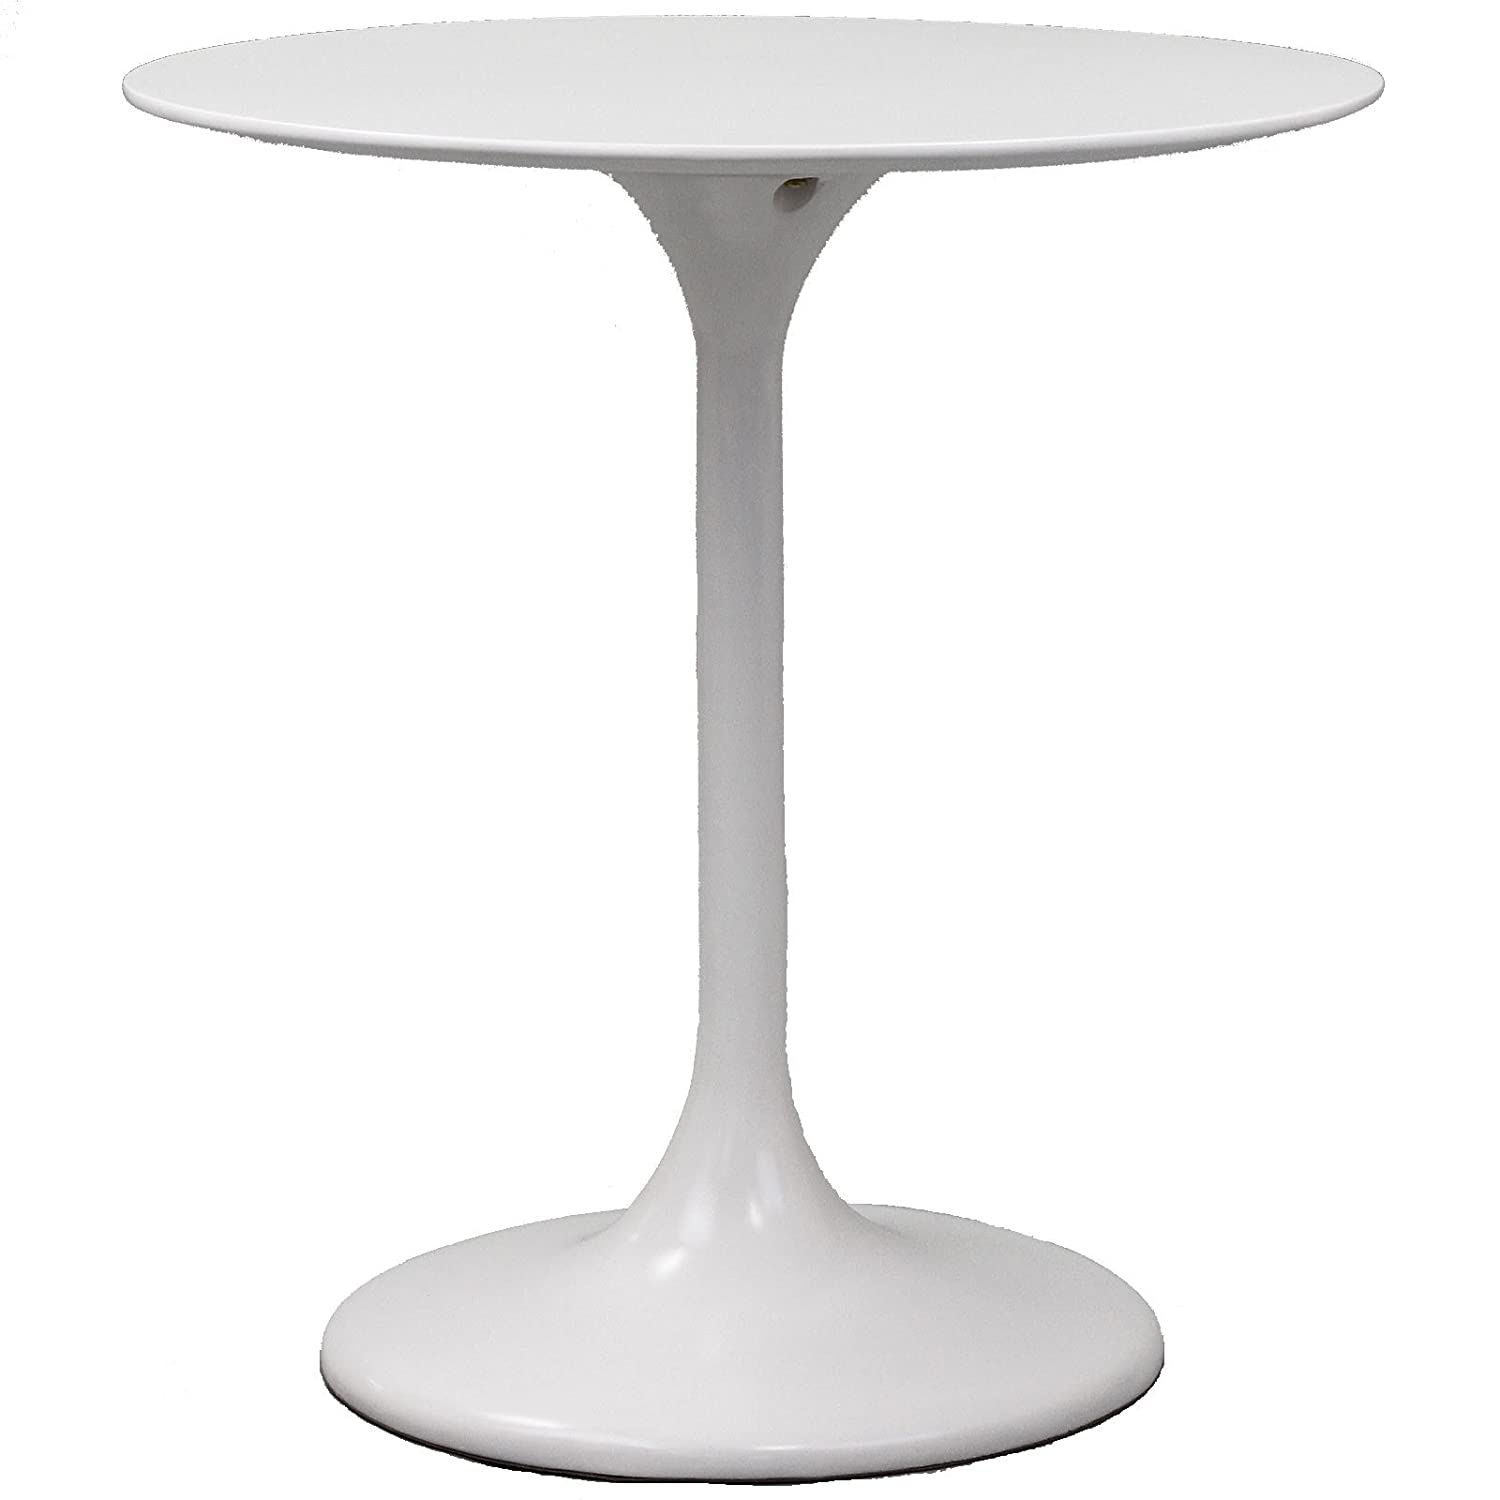 Amazon.com   Modway Lippa 28 Inch Fiber Glass Dining Table, White   Tables